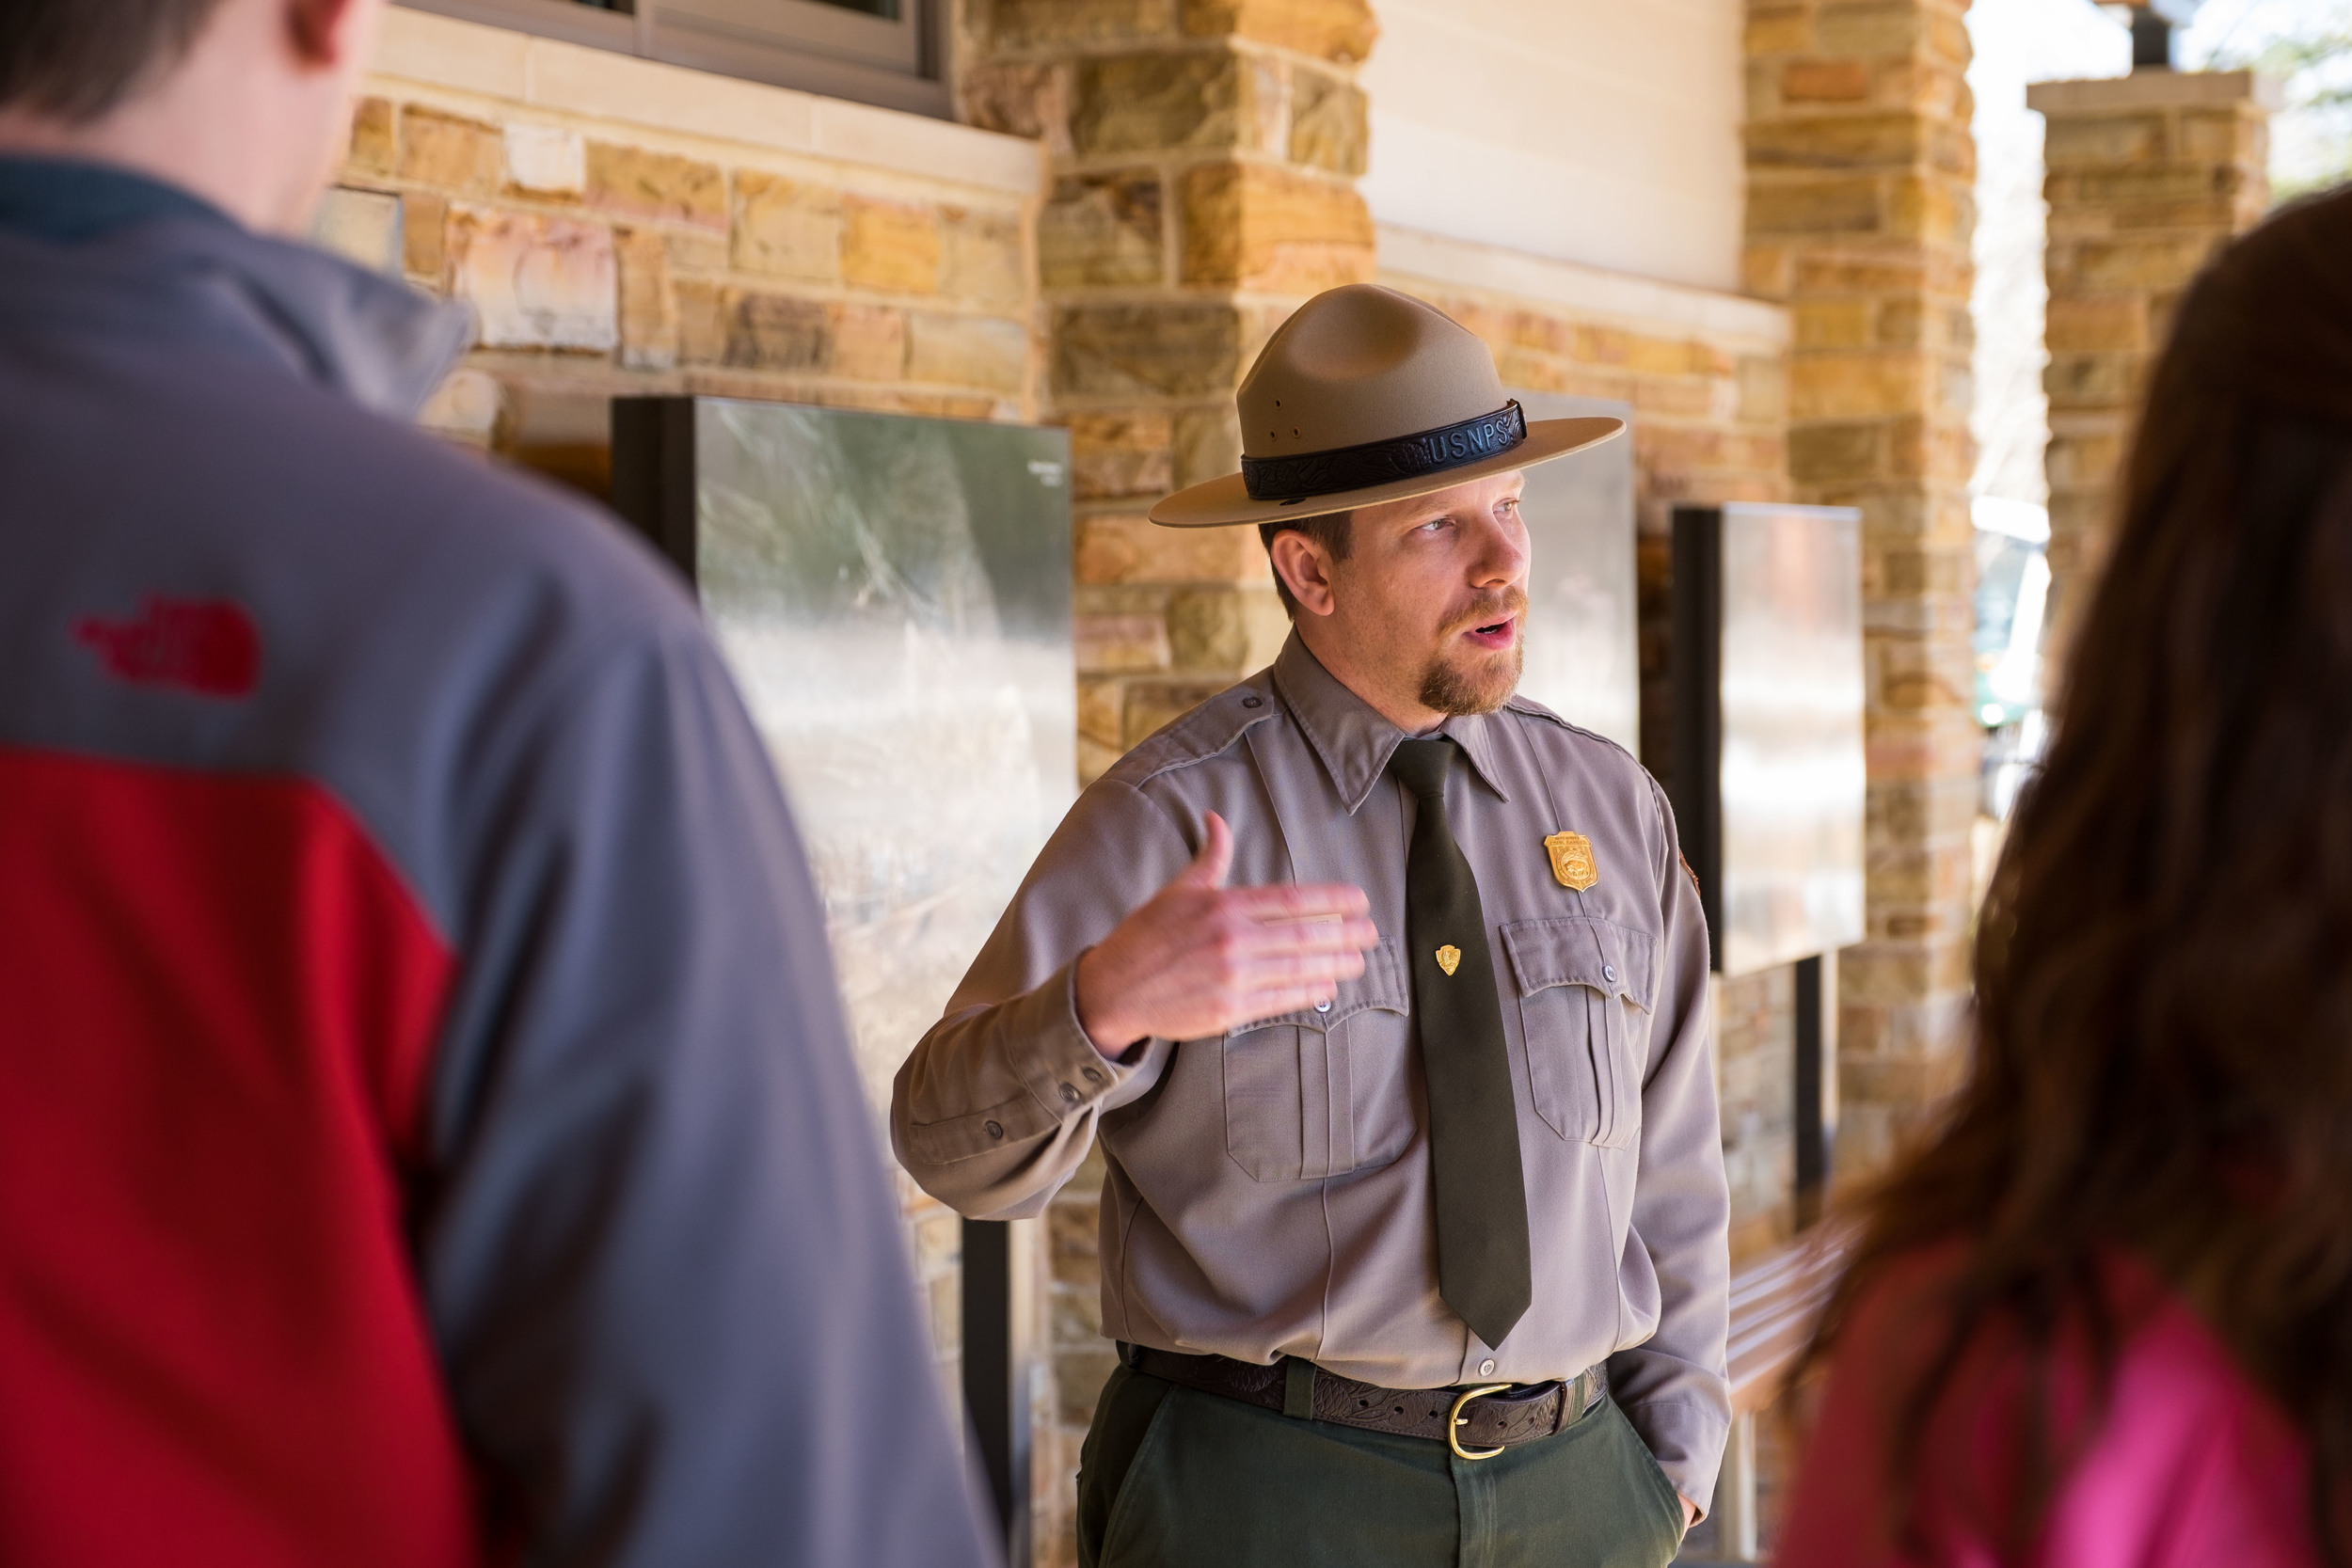 Ranger Jackie, our new friend, telling a group of cave visitors about the cave and its history.